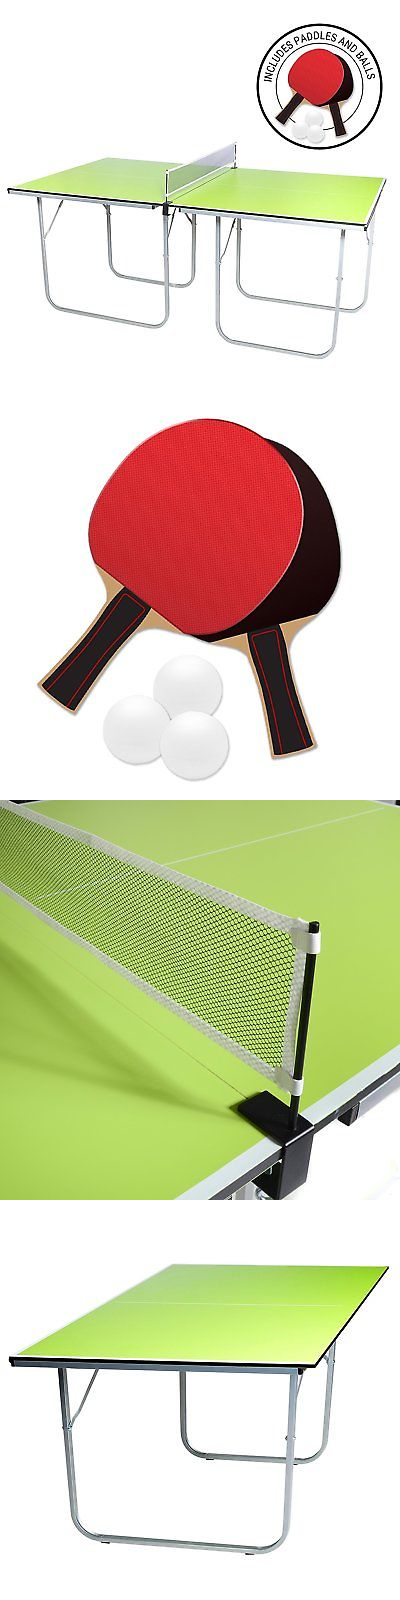 Sets 158955: Midsize Ping Pong Table, 40 X 70 Inches, Includes Net,